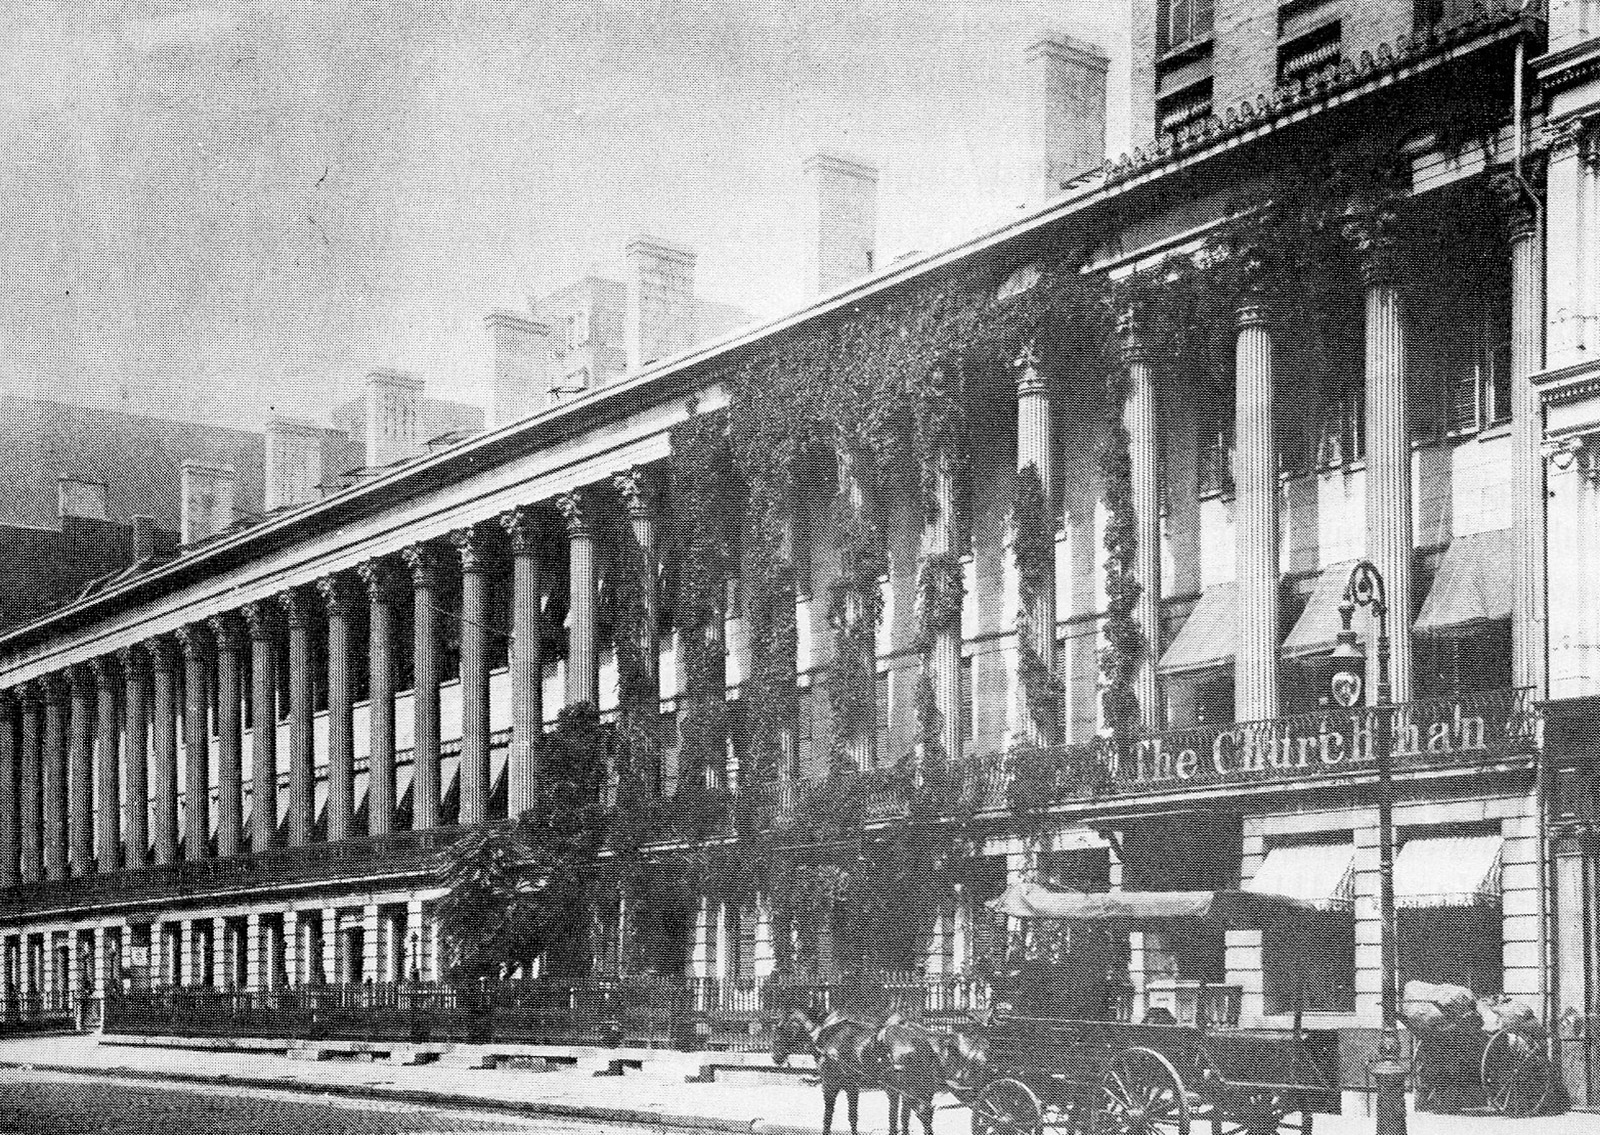 La Grange Terrace (Colonnade Row) and Lafayette Street in a 19th-century photograph - Foto https://ephemeralnewyork.wordpress.com/